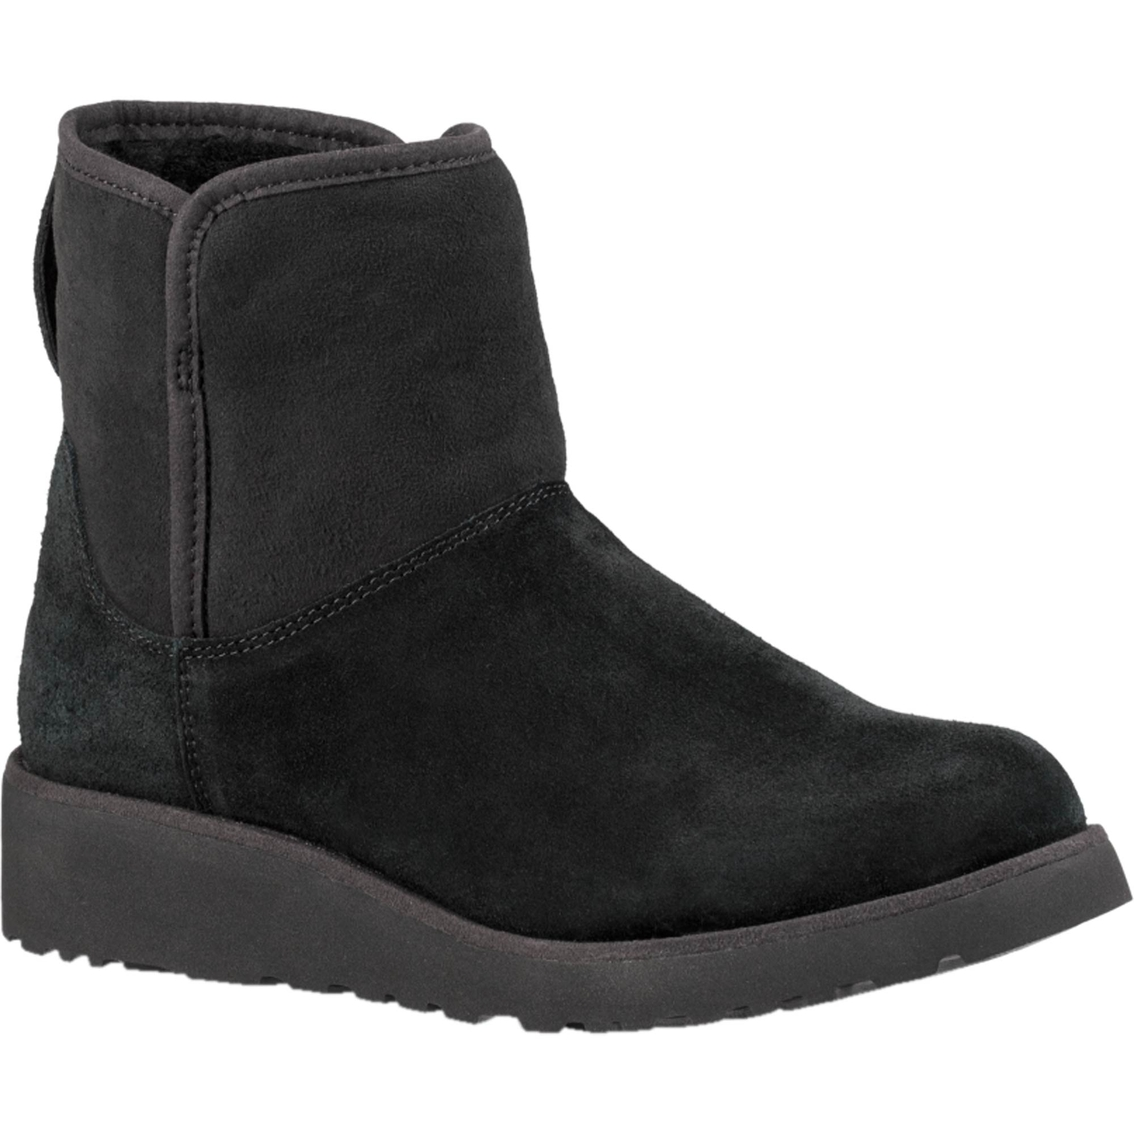 b7d50e98701 Ugg Kristin Slim Wedge Boots | Booties | Shoes | Shop The Exchange